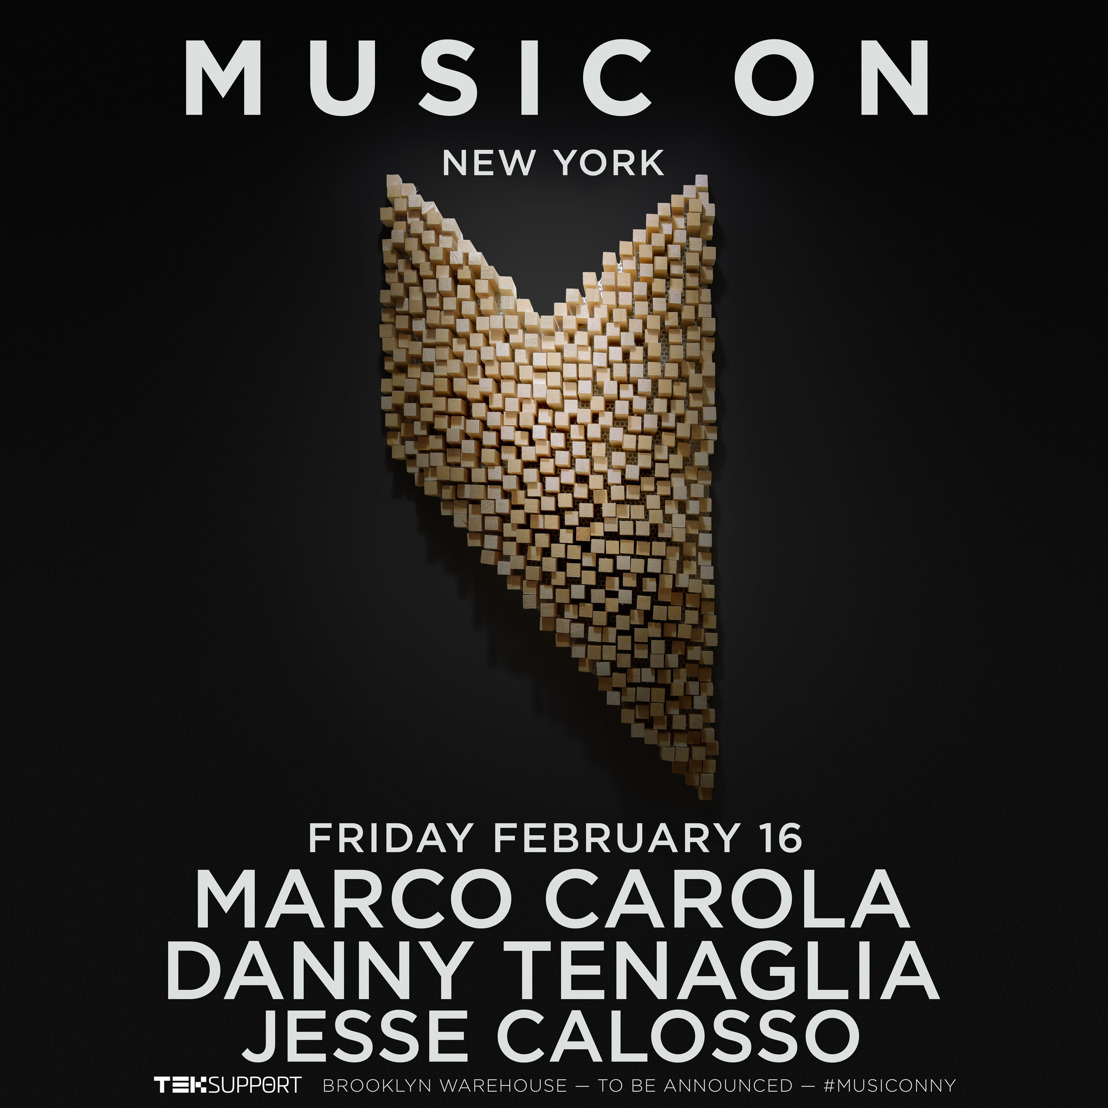 Danny Tenaglia To Join Marco Carola At Music On NYC Feb 16